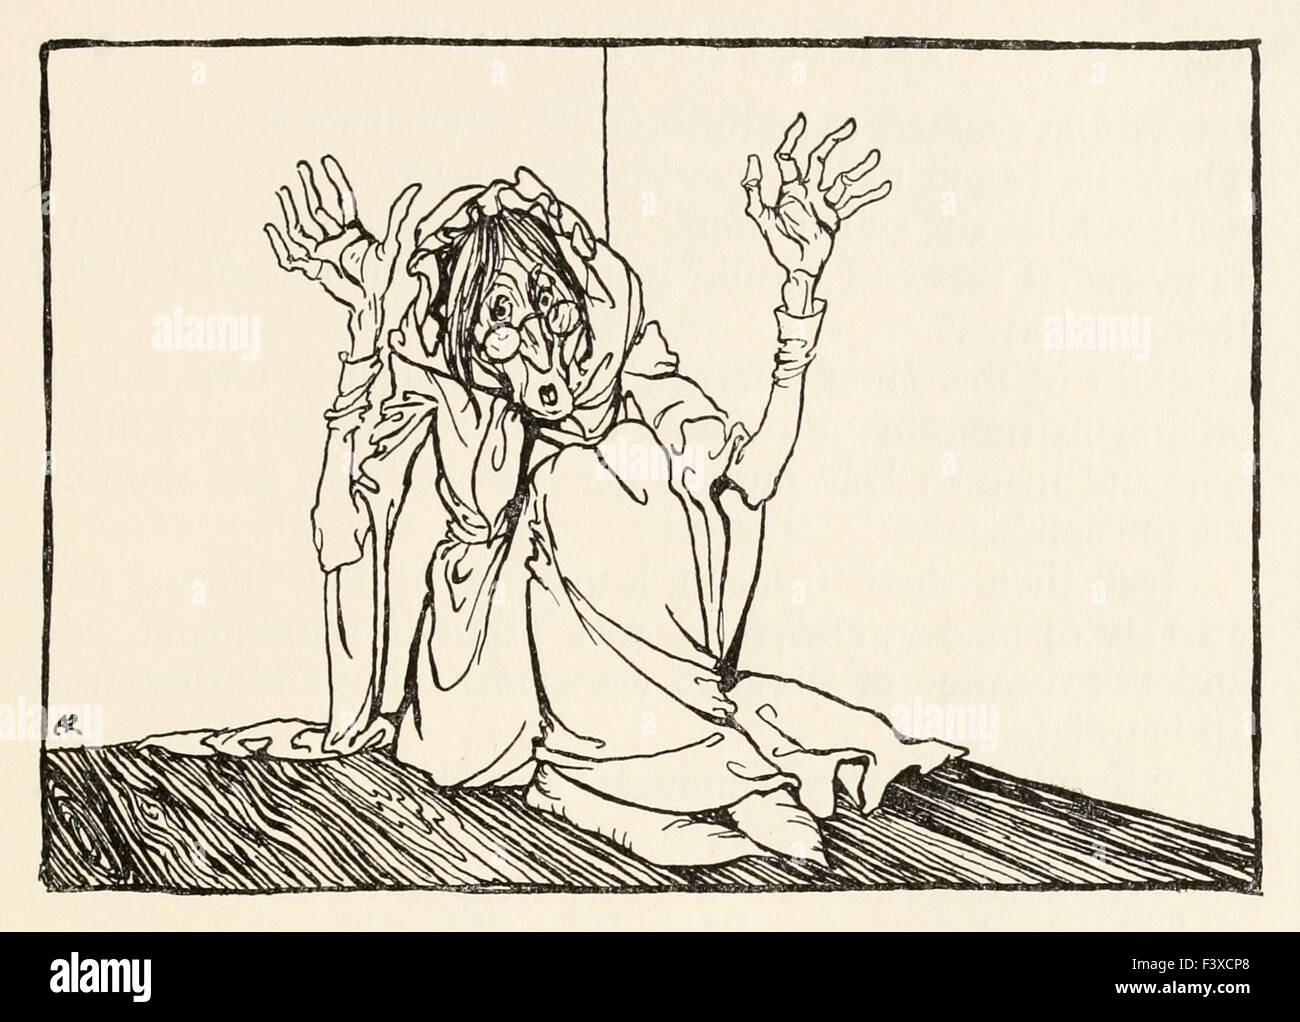 The Hag sat against the wall, from 'Morgan's Frenzy' in 'Irish Fairy Tales', illustration by - Stock Image